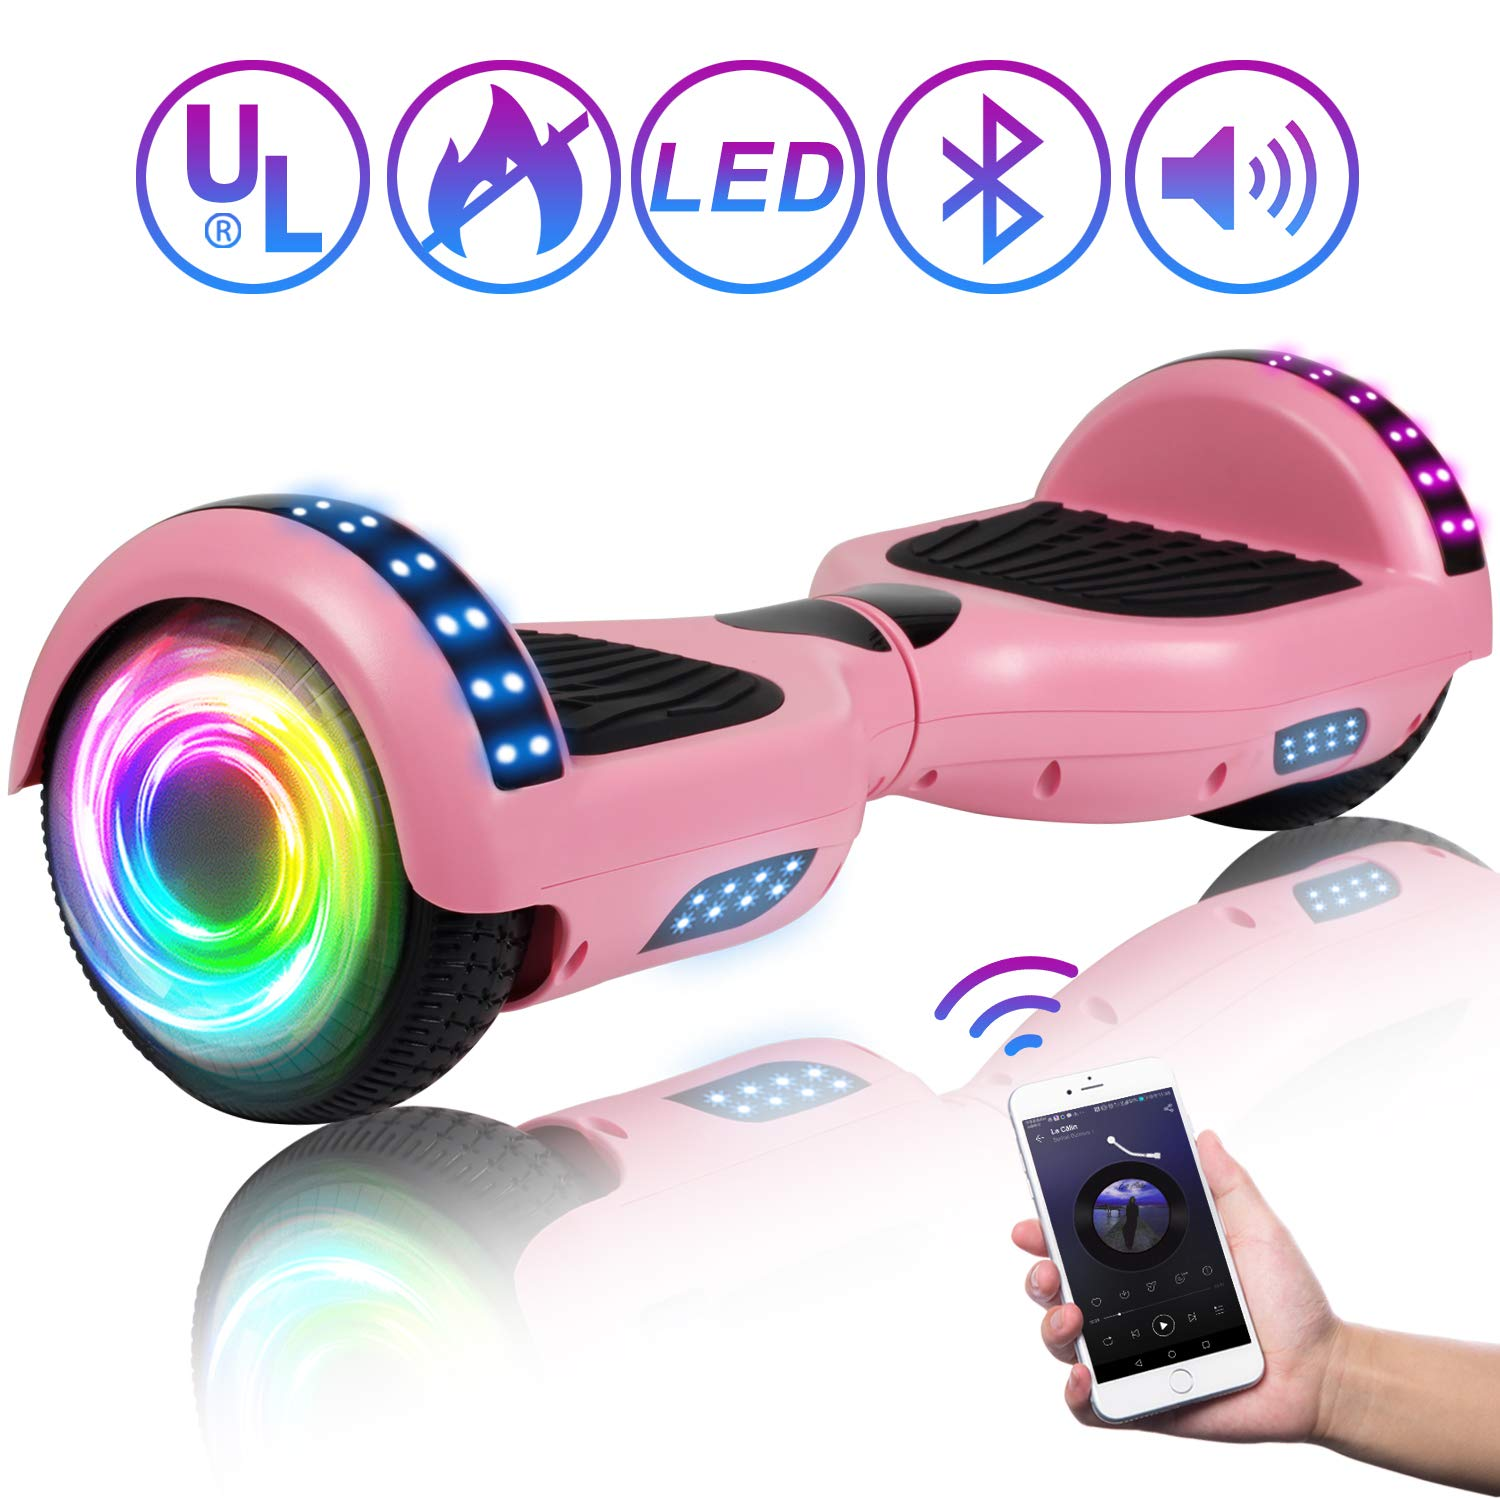 SISIGAD Hoverboard 6.5'' Self Balancing Scooter with Colorful LED Wheels Lights Two-Wheels self Balancing Hoverboard Dual 300W Motors Hover Board UL2272 Certified